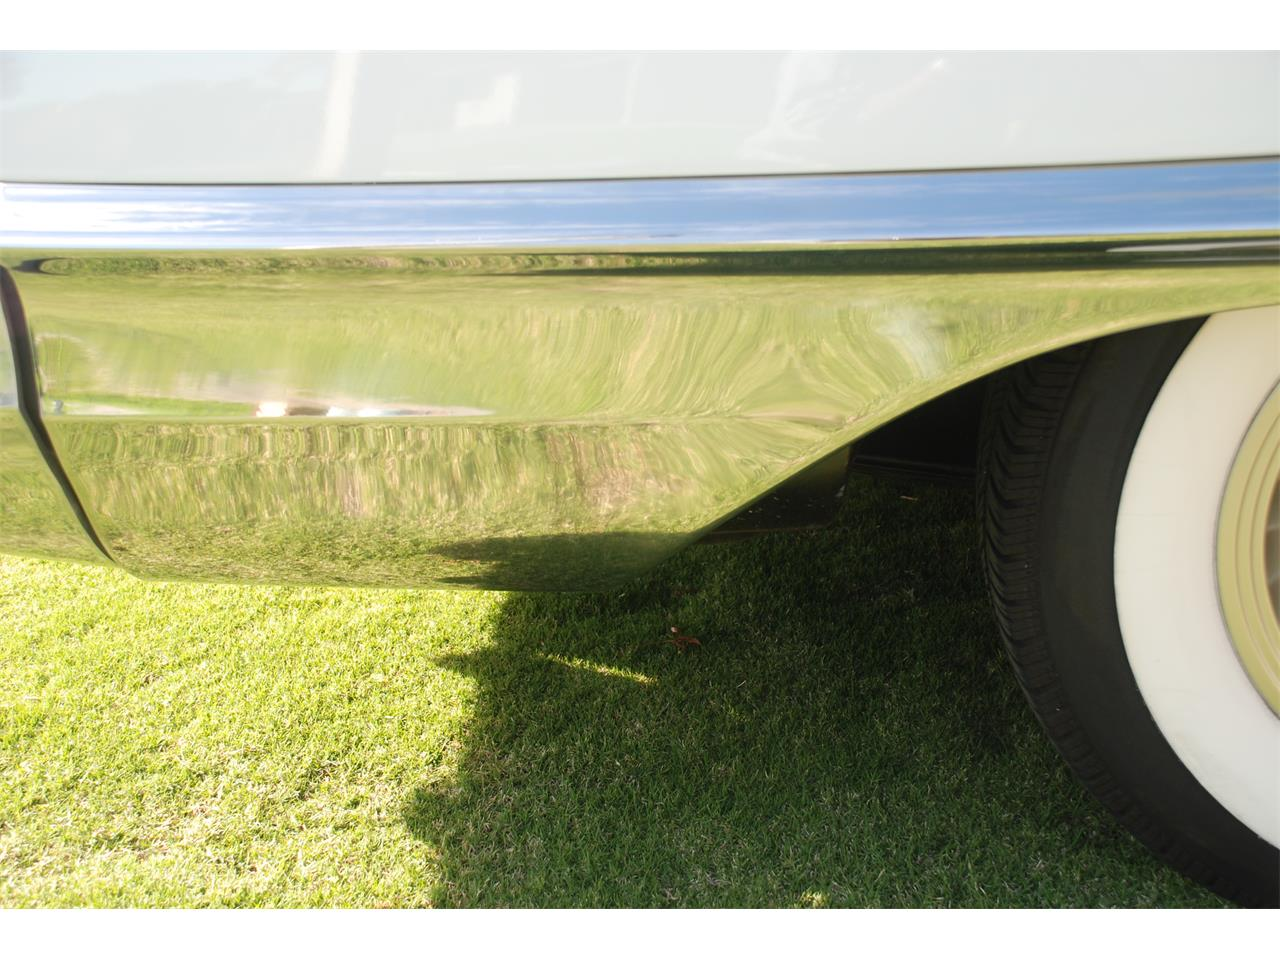 Large Picture of Classic '57 Cadillac Eldorado Biarritz located in  - $120,000.00 Offered by a Private Seller - I9YC